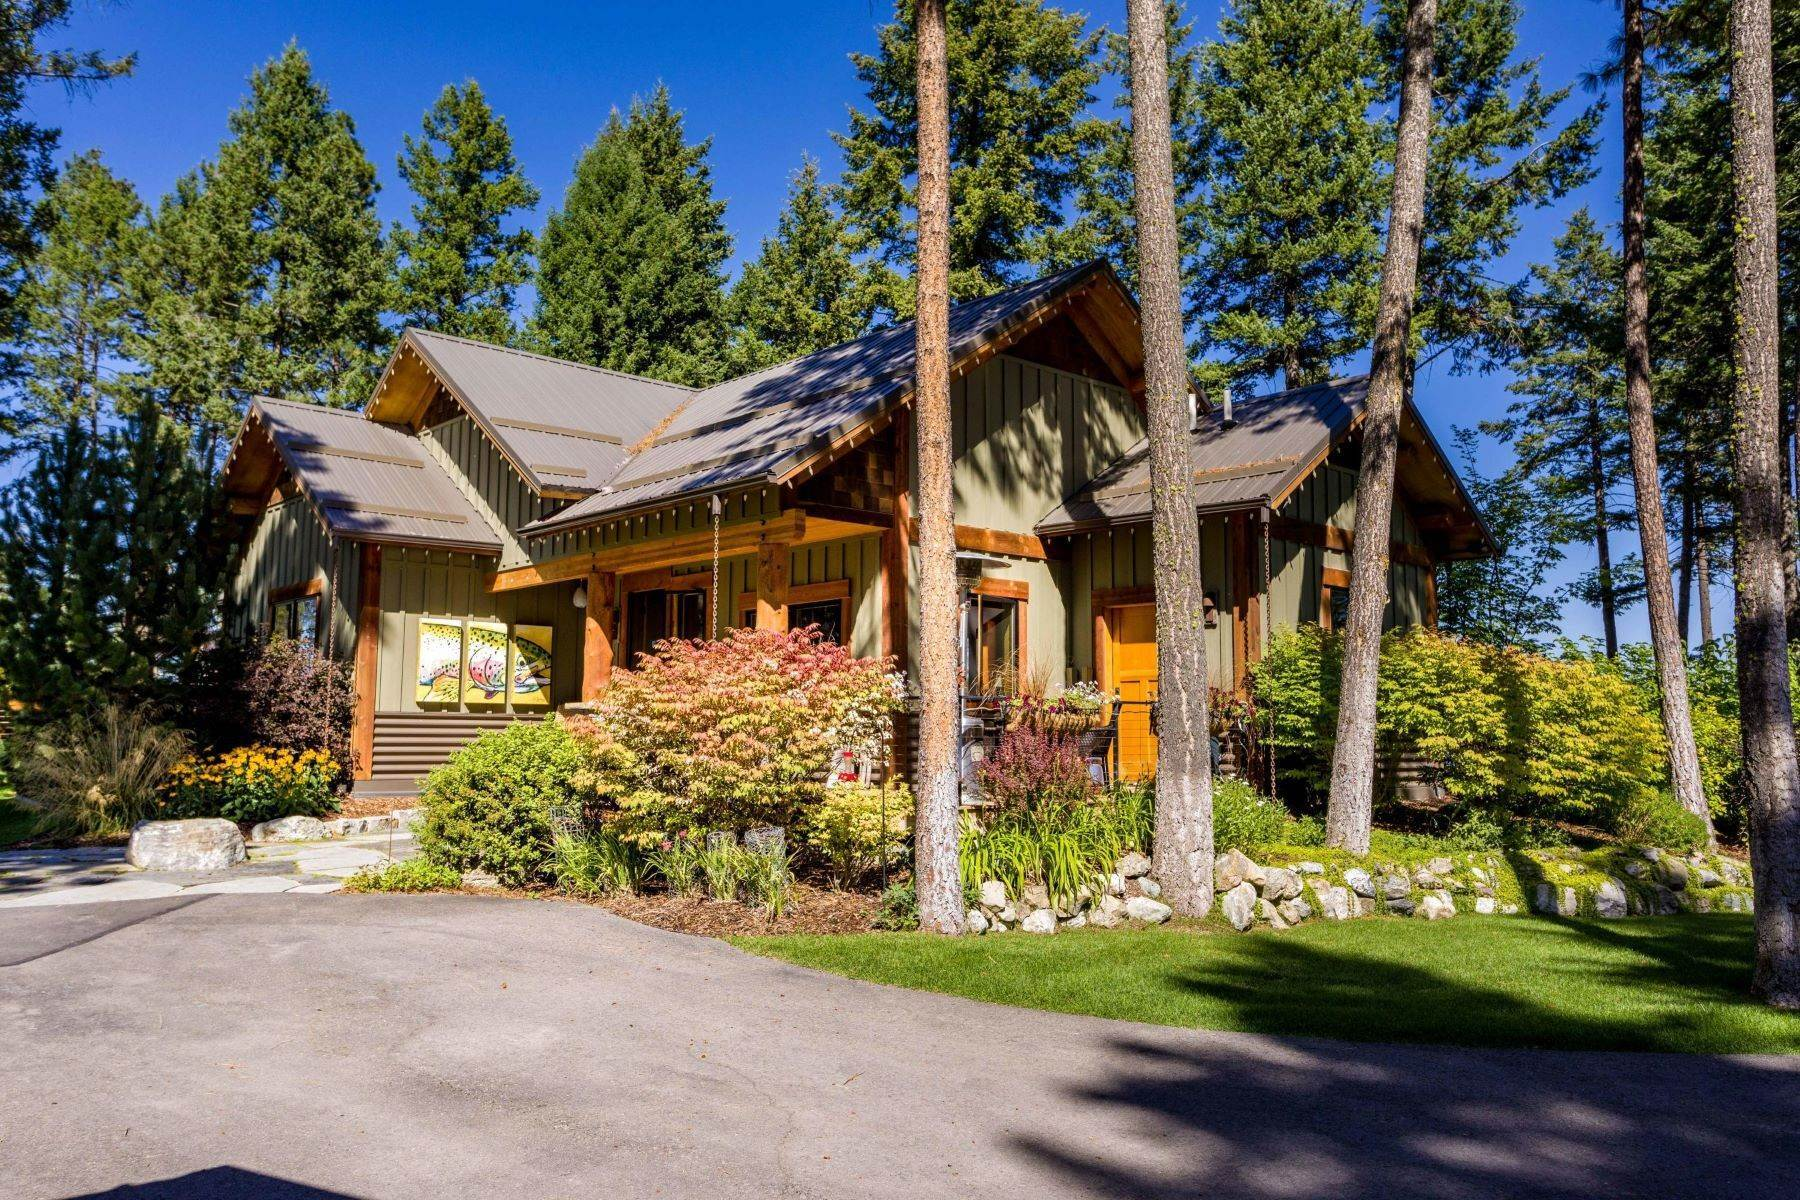 Single Family Homes for Sale at Commanding Views 200 & 250 Big Pine Trail Lakeside, Montana 59922 United States